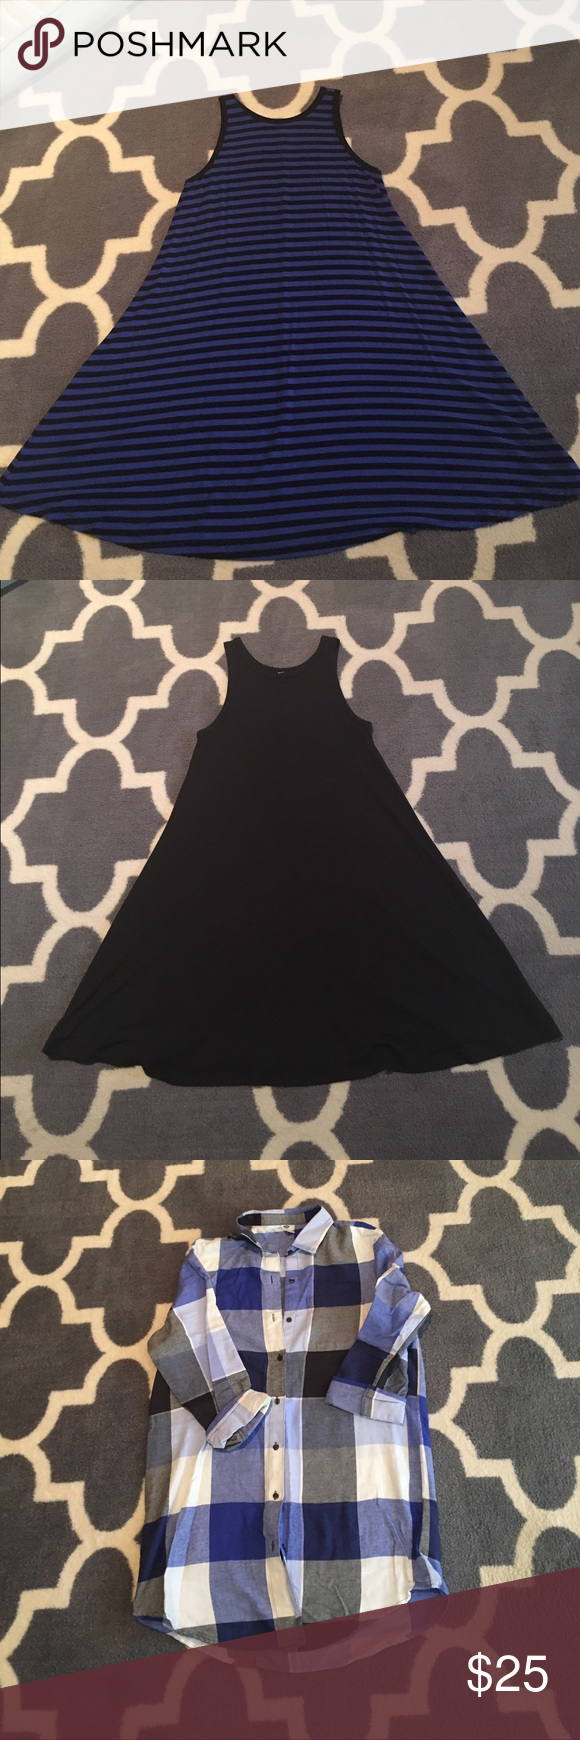 Bundle for gb2016 2 Old Navy swing dresses and one Old Navy sleepshirt Dresses